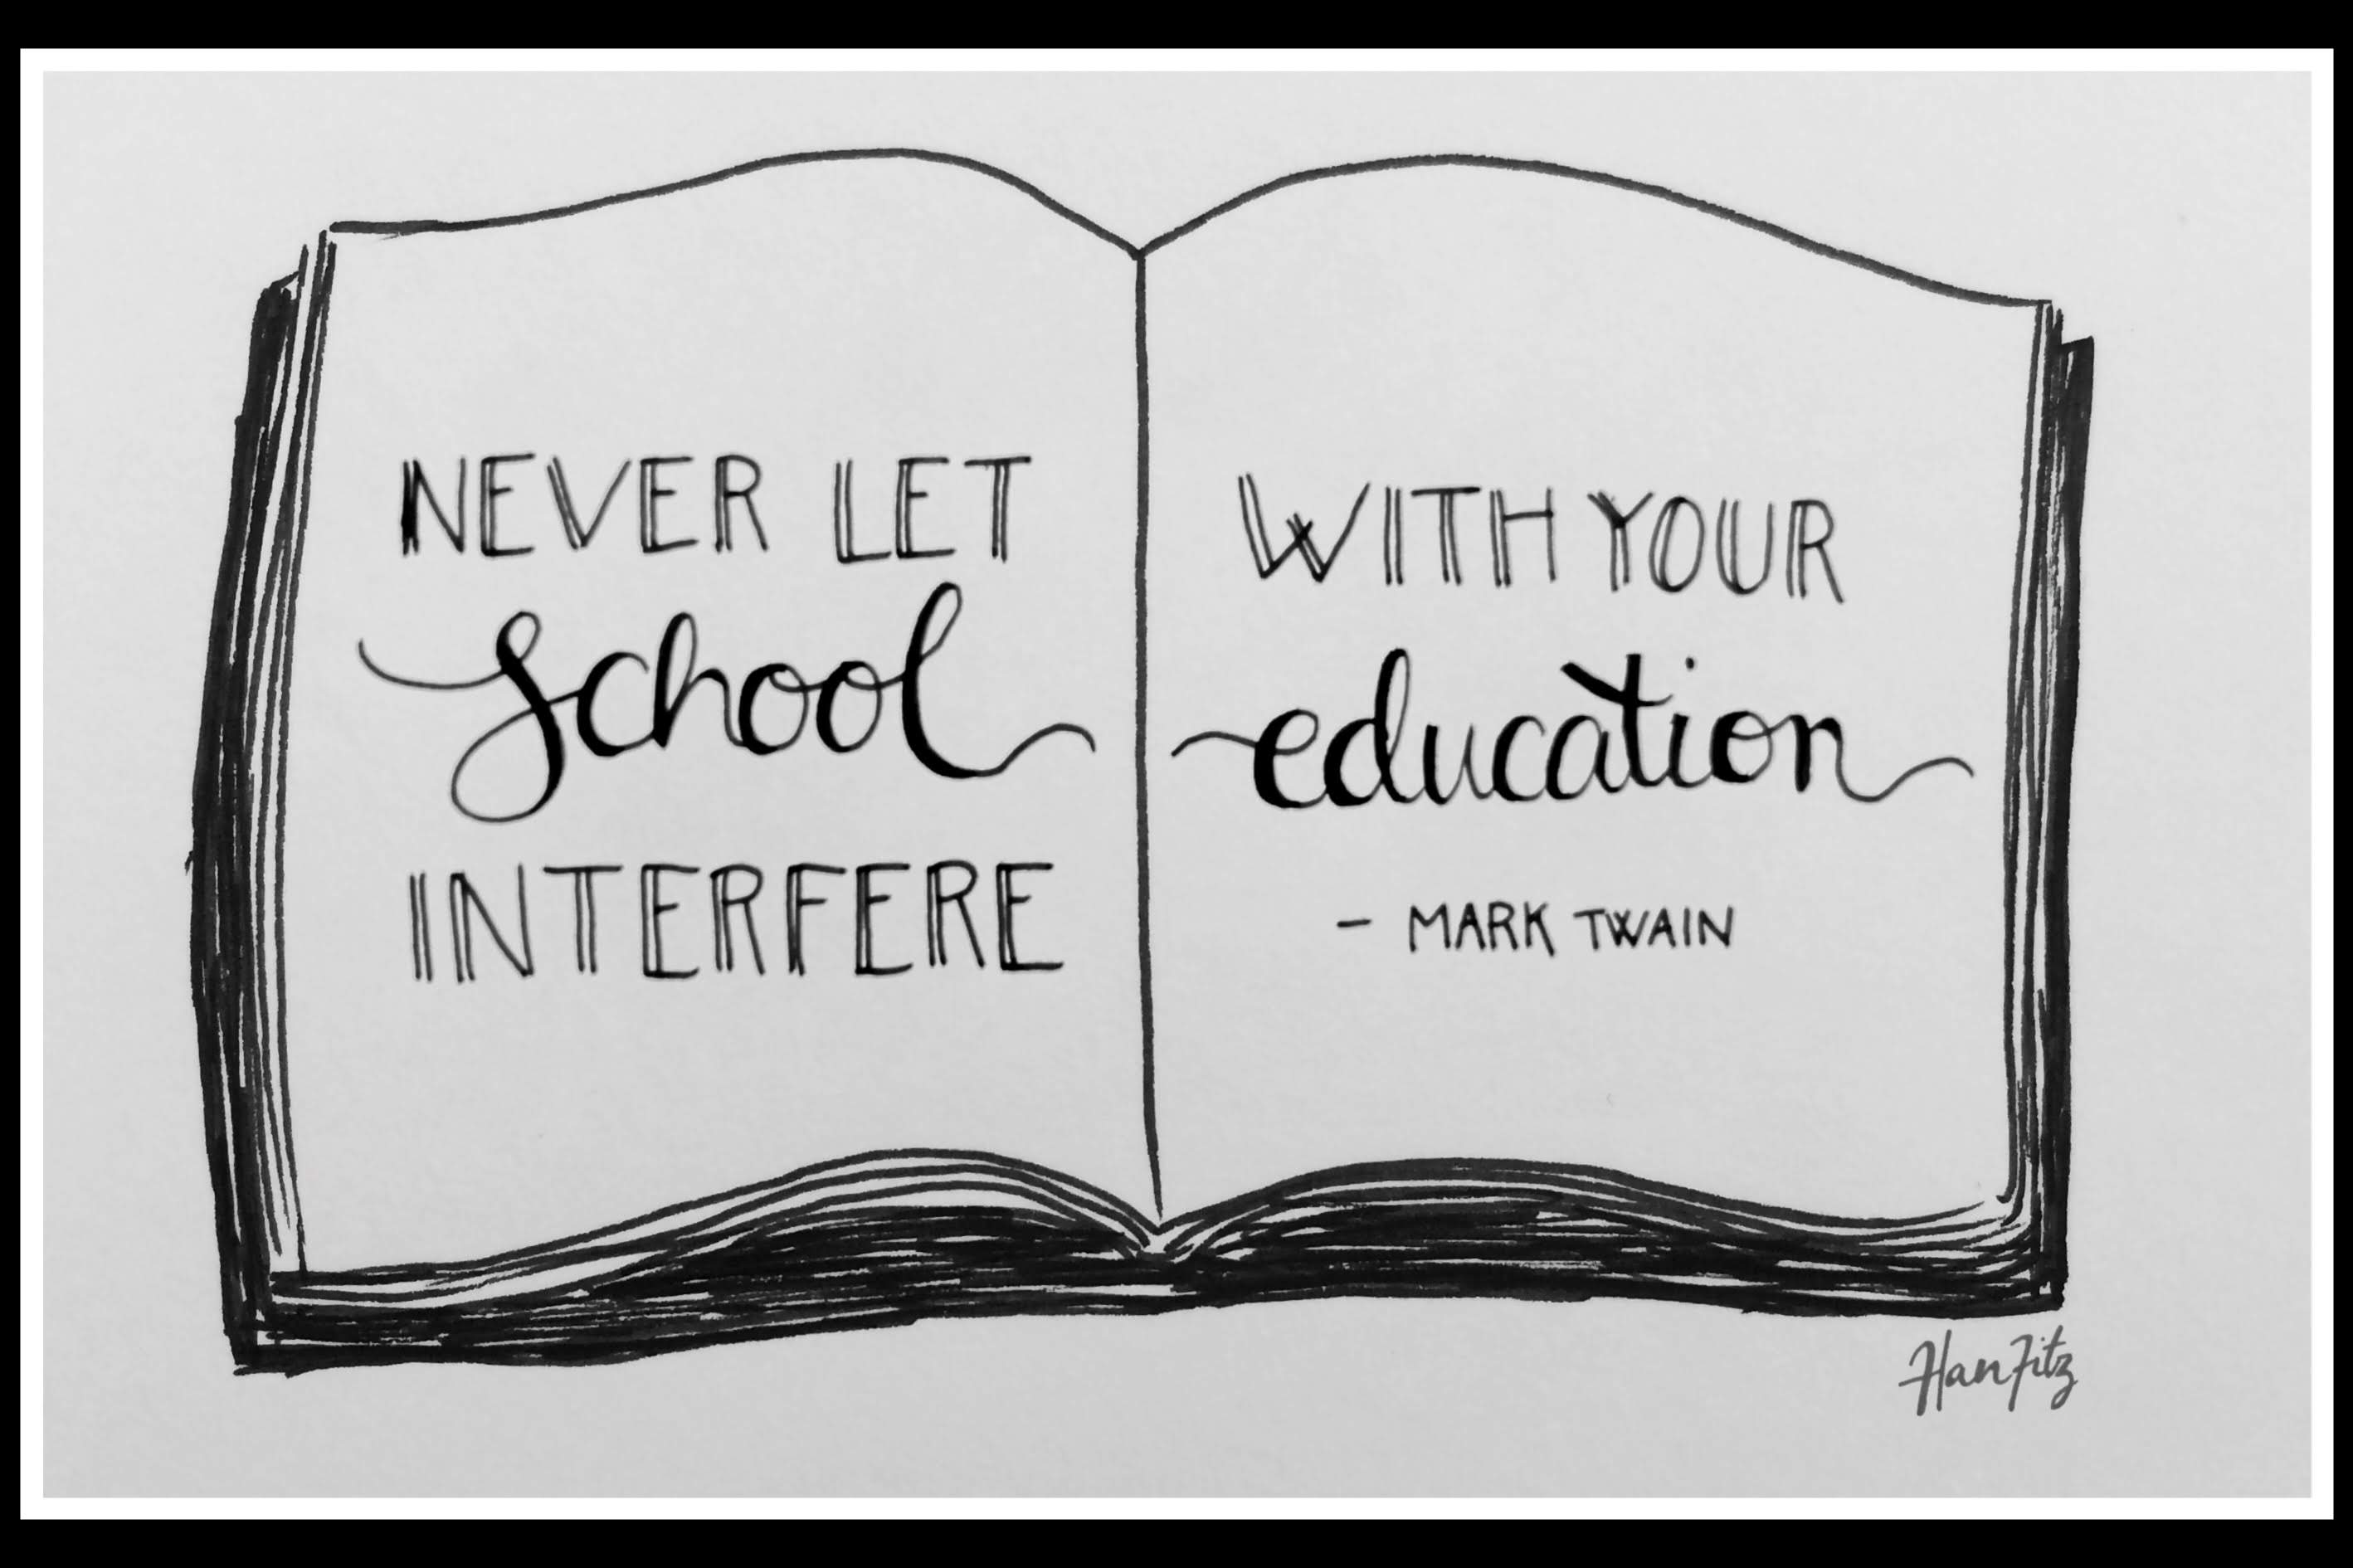 """Don't let school get in the way of a good education"" - Mark Twain"